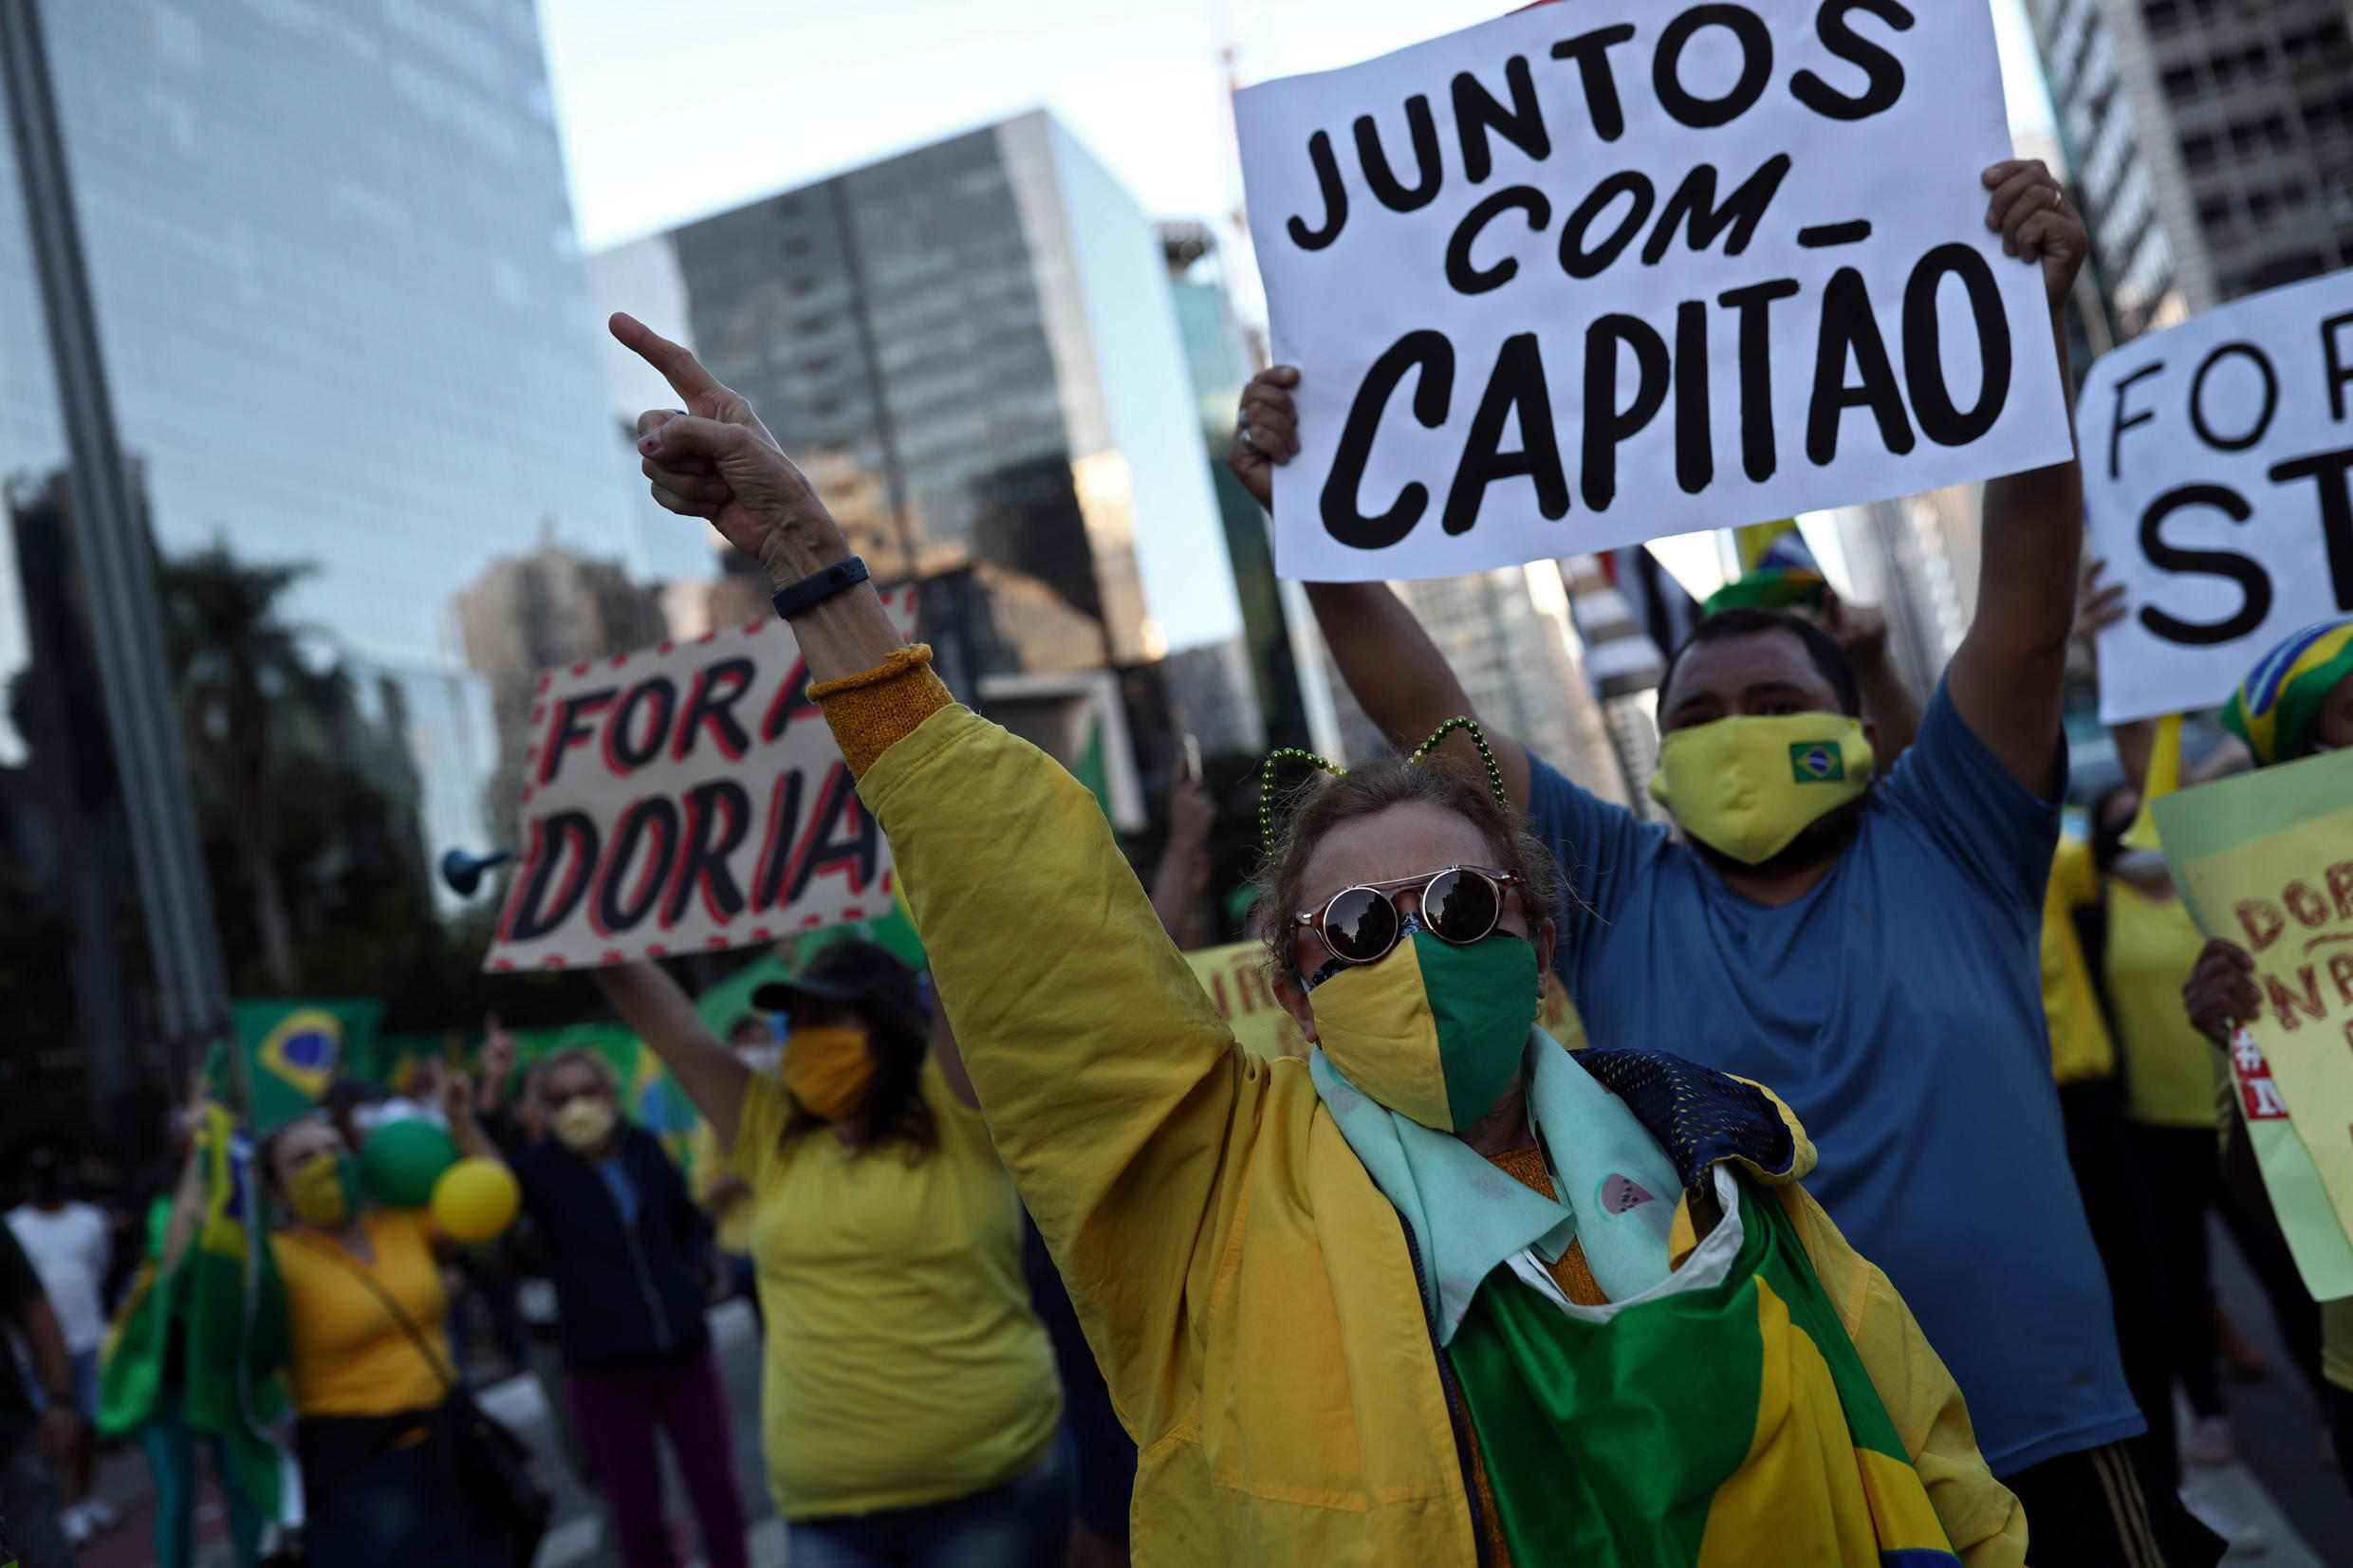 """Supporters of far-right Brazilian President Jair Bolsonaro take part in a protest against social distancing and quarantine measures, recommended by Sao Paulo's governor Joao Doria, following the coronavirus disease (COVID-19) outbreak, in Sao Paulo, Brazil, May 3, 2020. The placard reads: """"Together with the captain."""""""